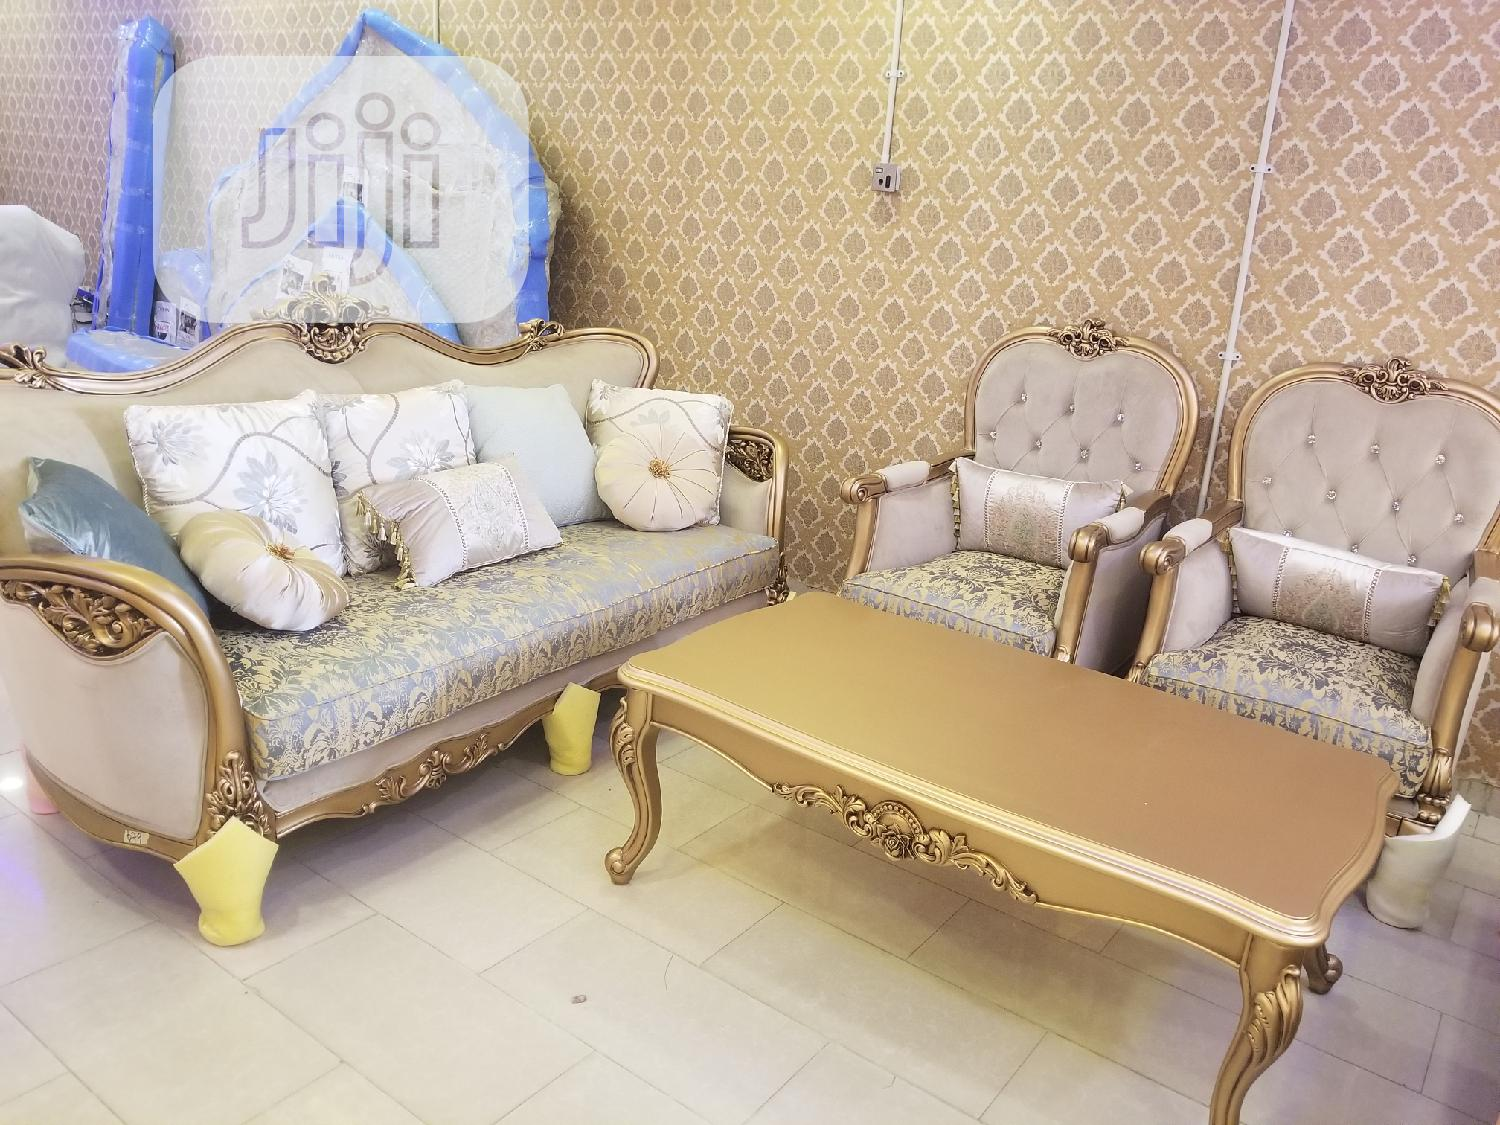 Full Set Of Turkish Royal Fabric Sofa Chair Available | Furniture for sale in Ajah, Lagos State, Nigeria